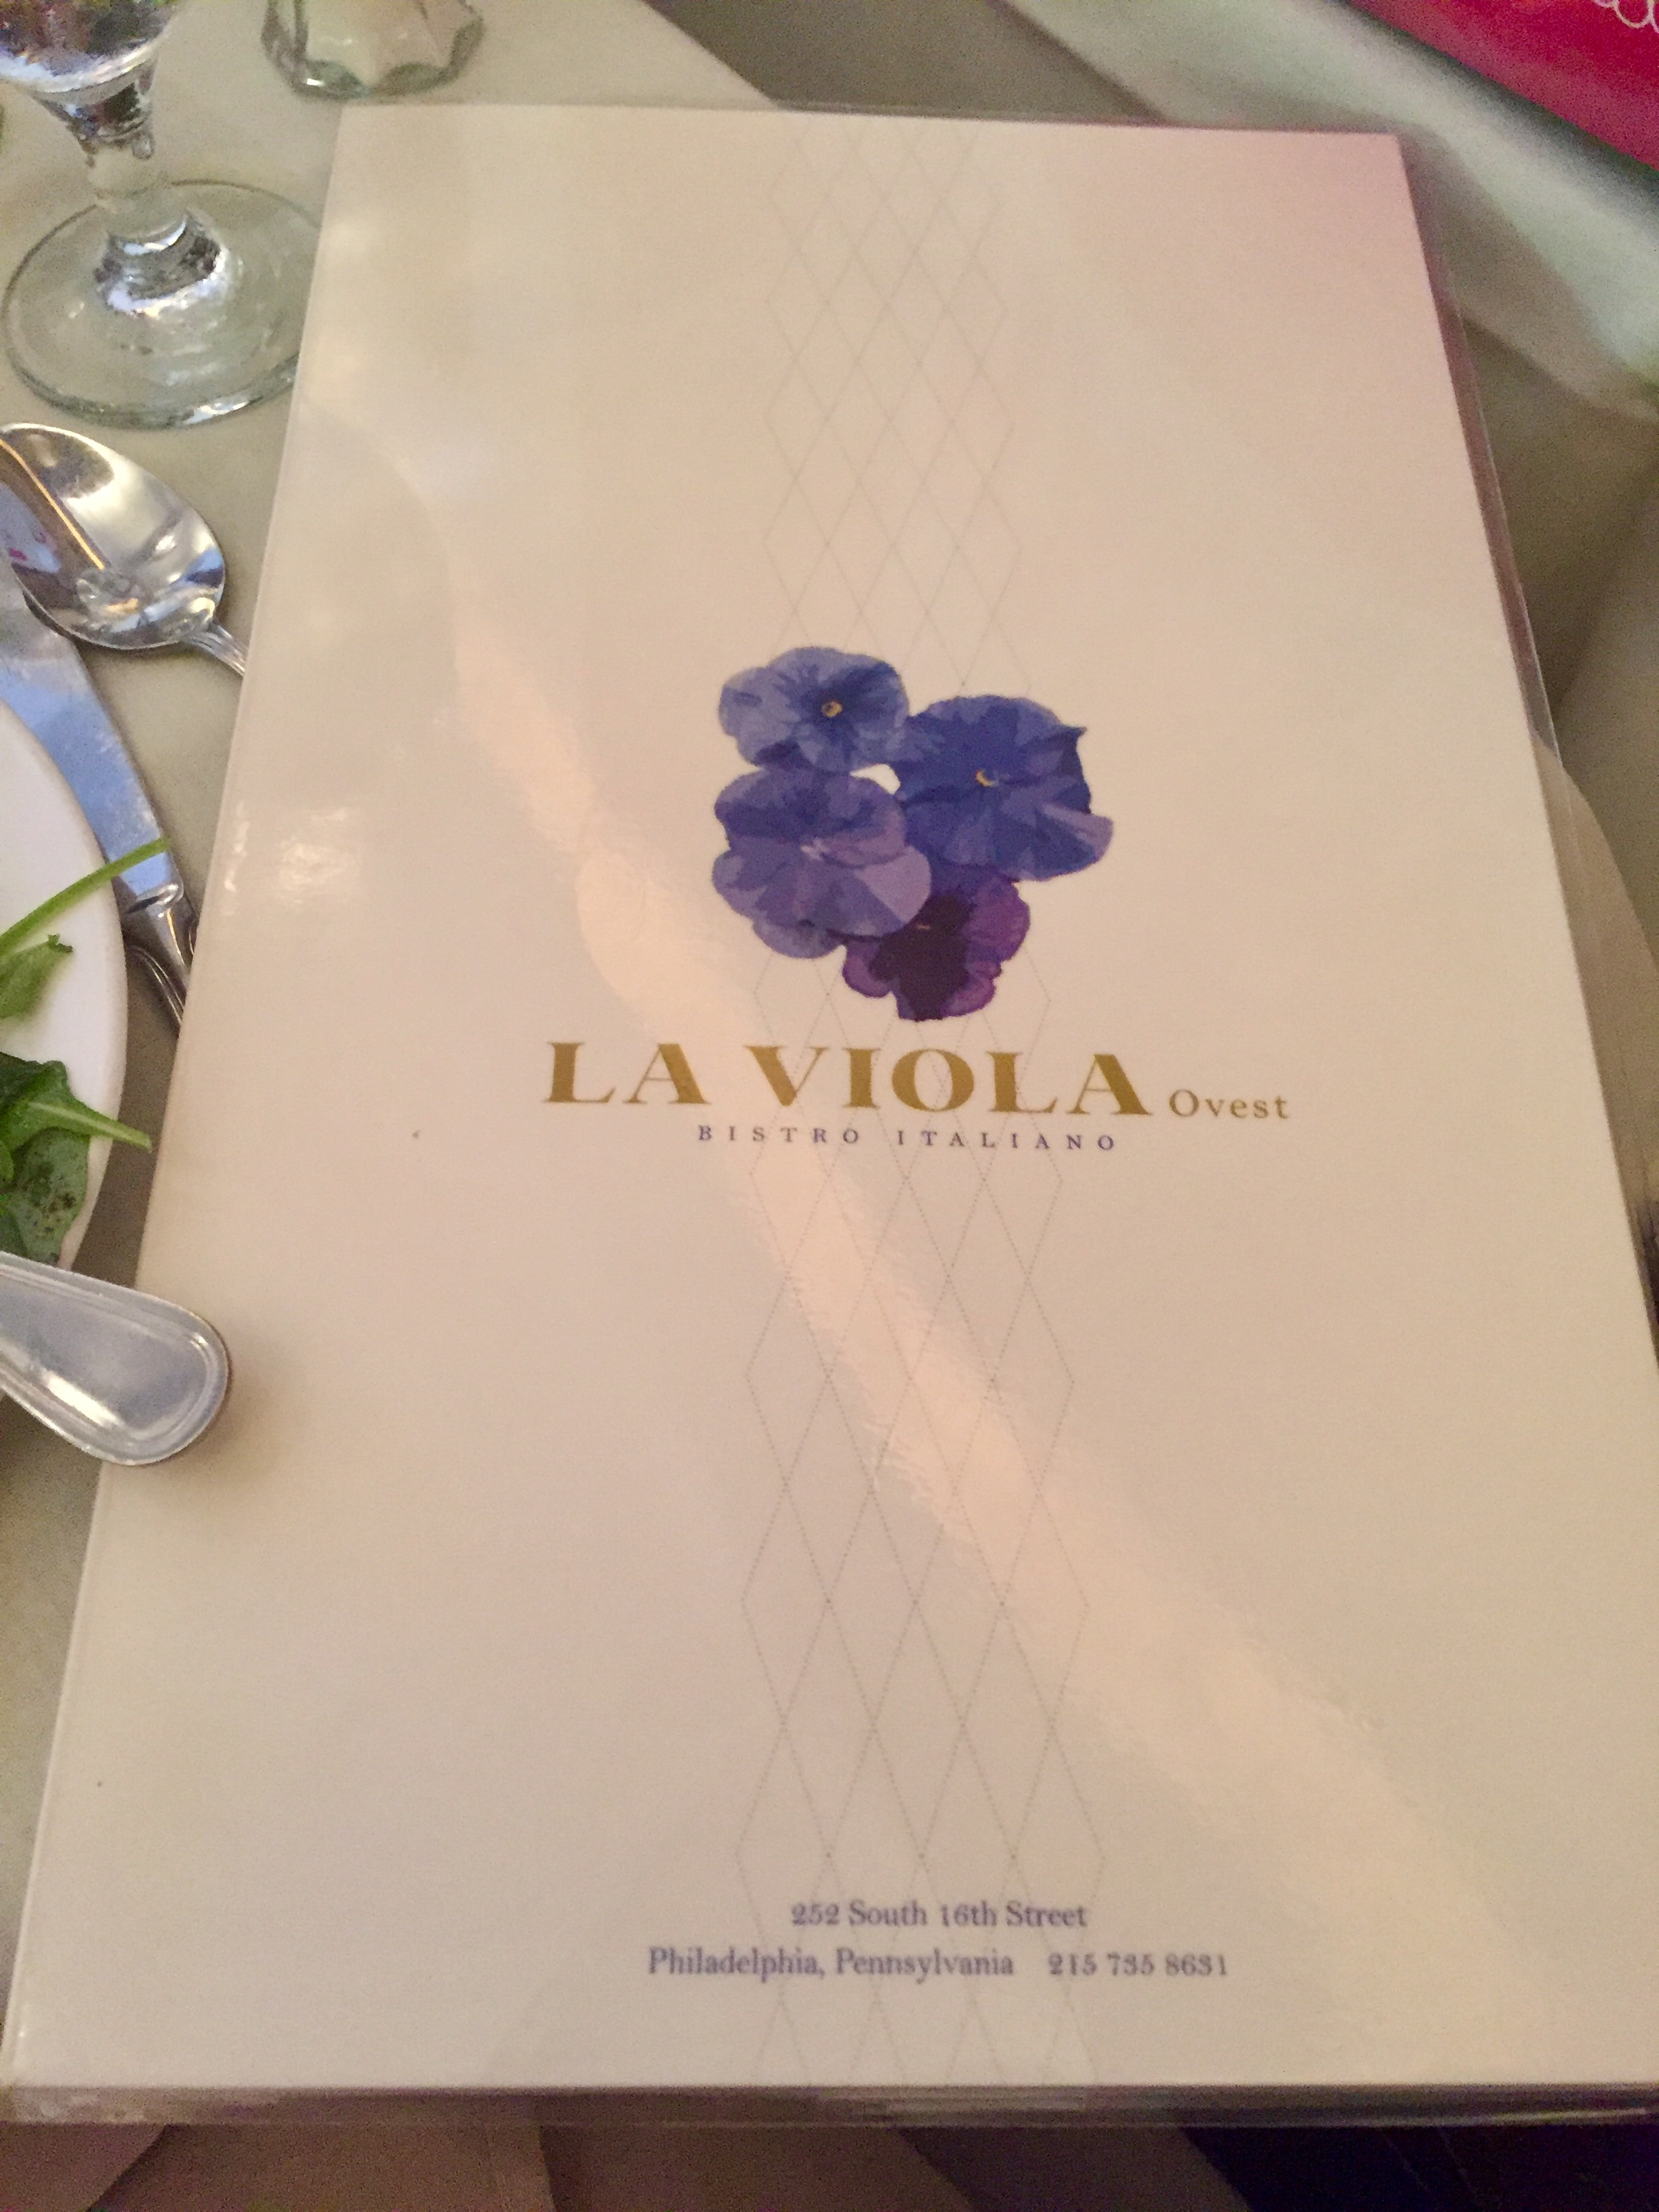 Birthday Dinner at La Viola Ovest Restaurant